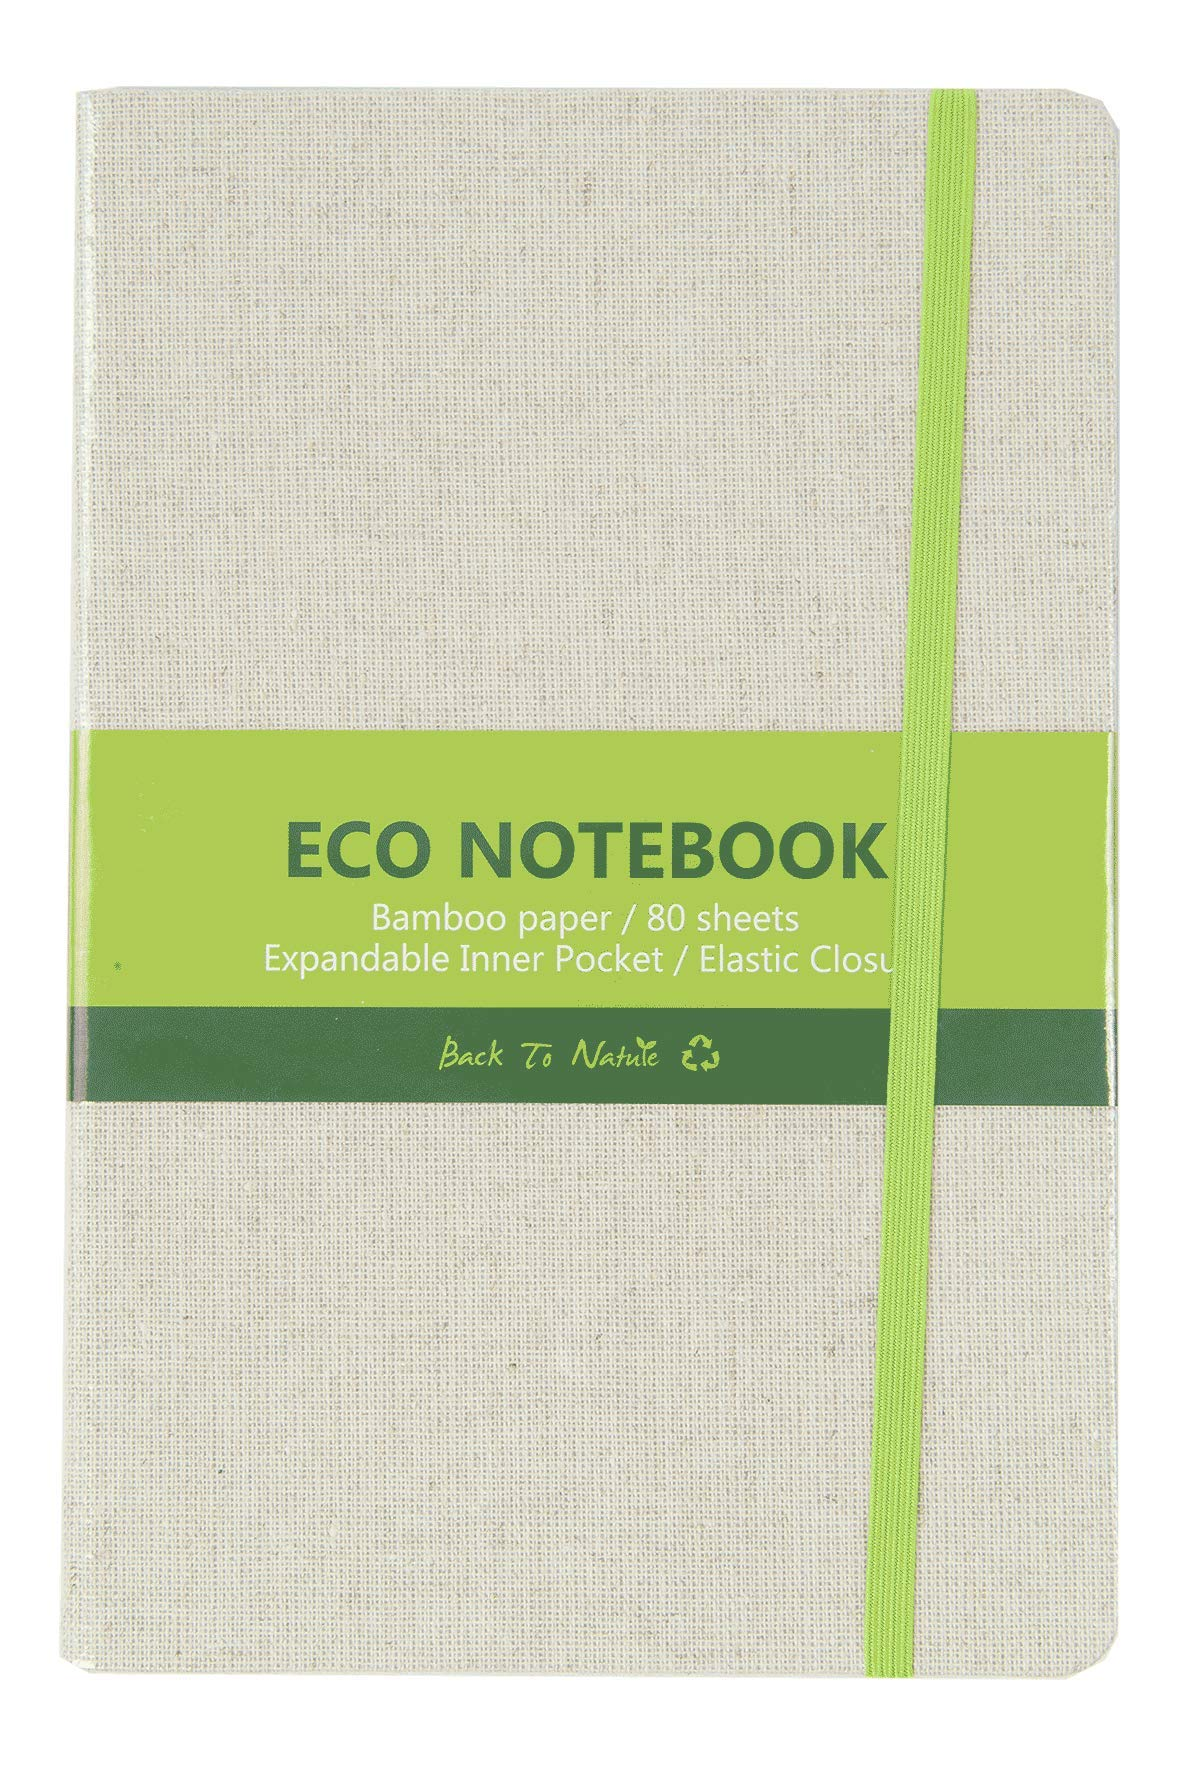 25 Pack Eco-Friendly A5 Linen Notebook, 5.5 x 8.25, Bamboo Ruled Paper, 80 Sheets 25 Piece Case Pack by goindico